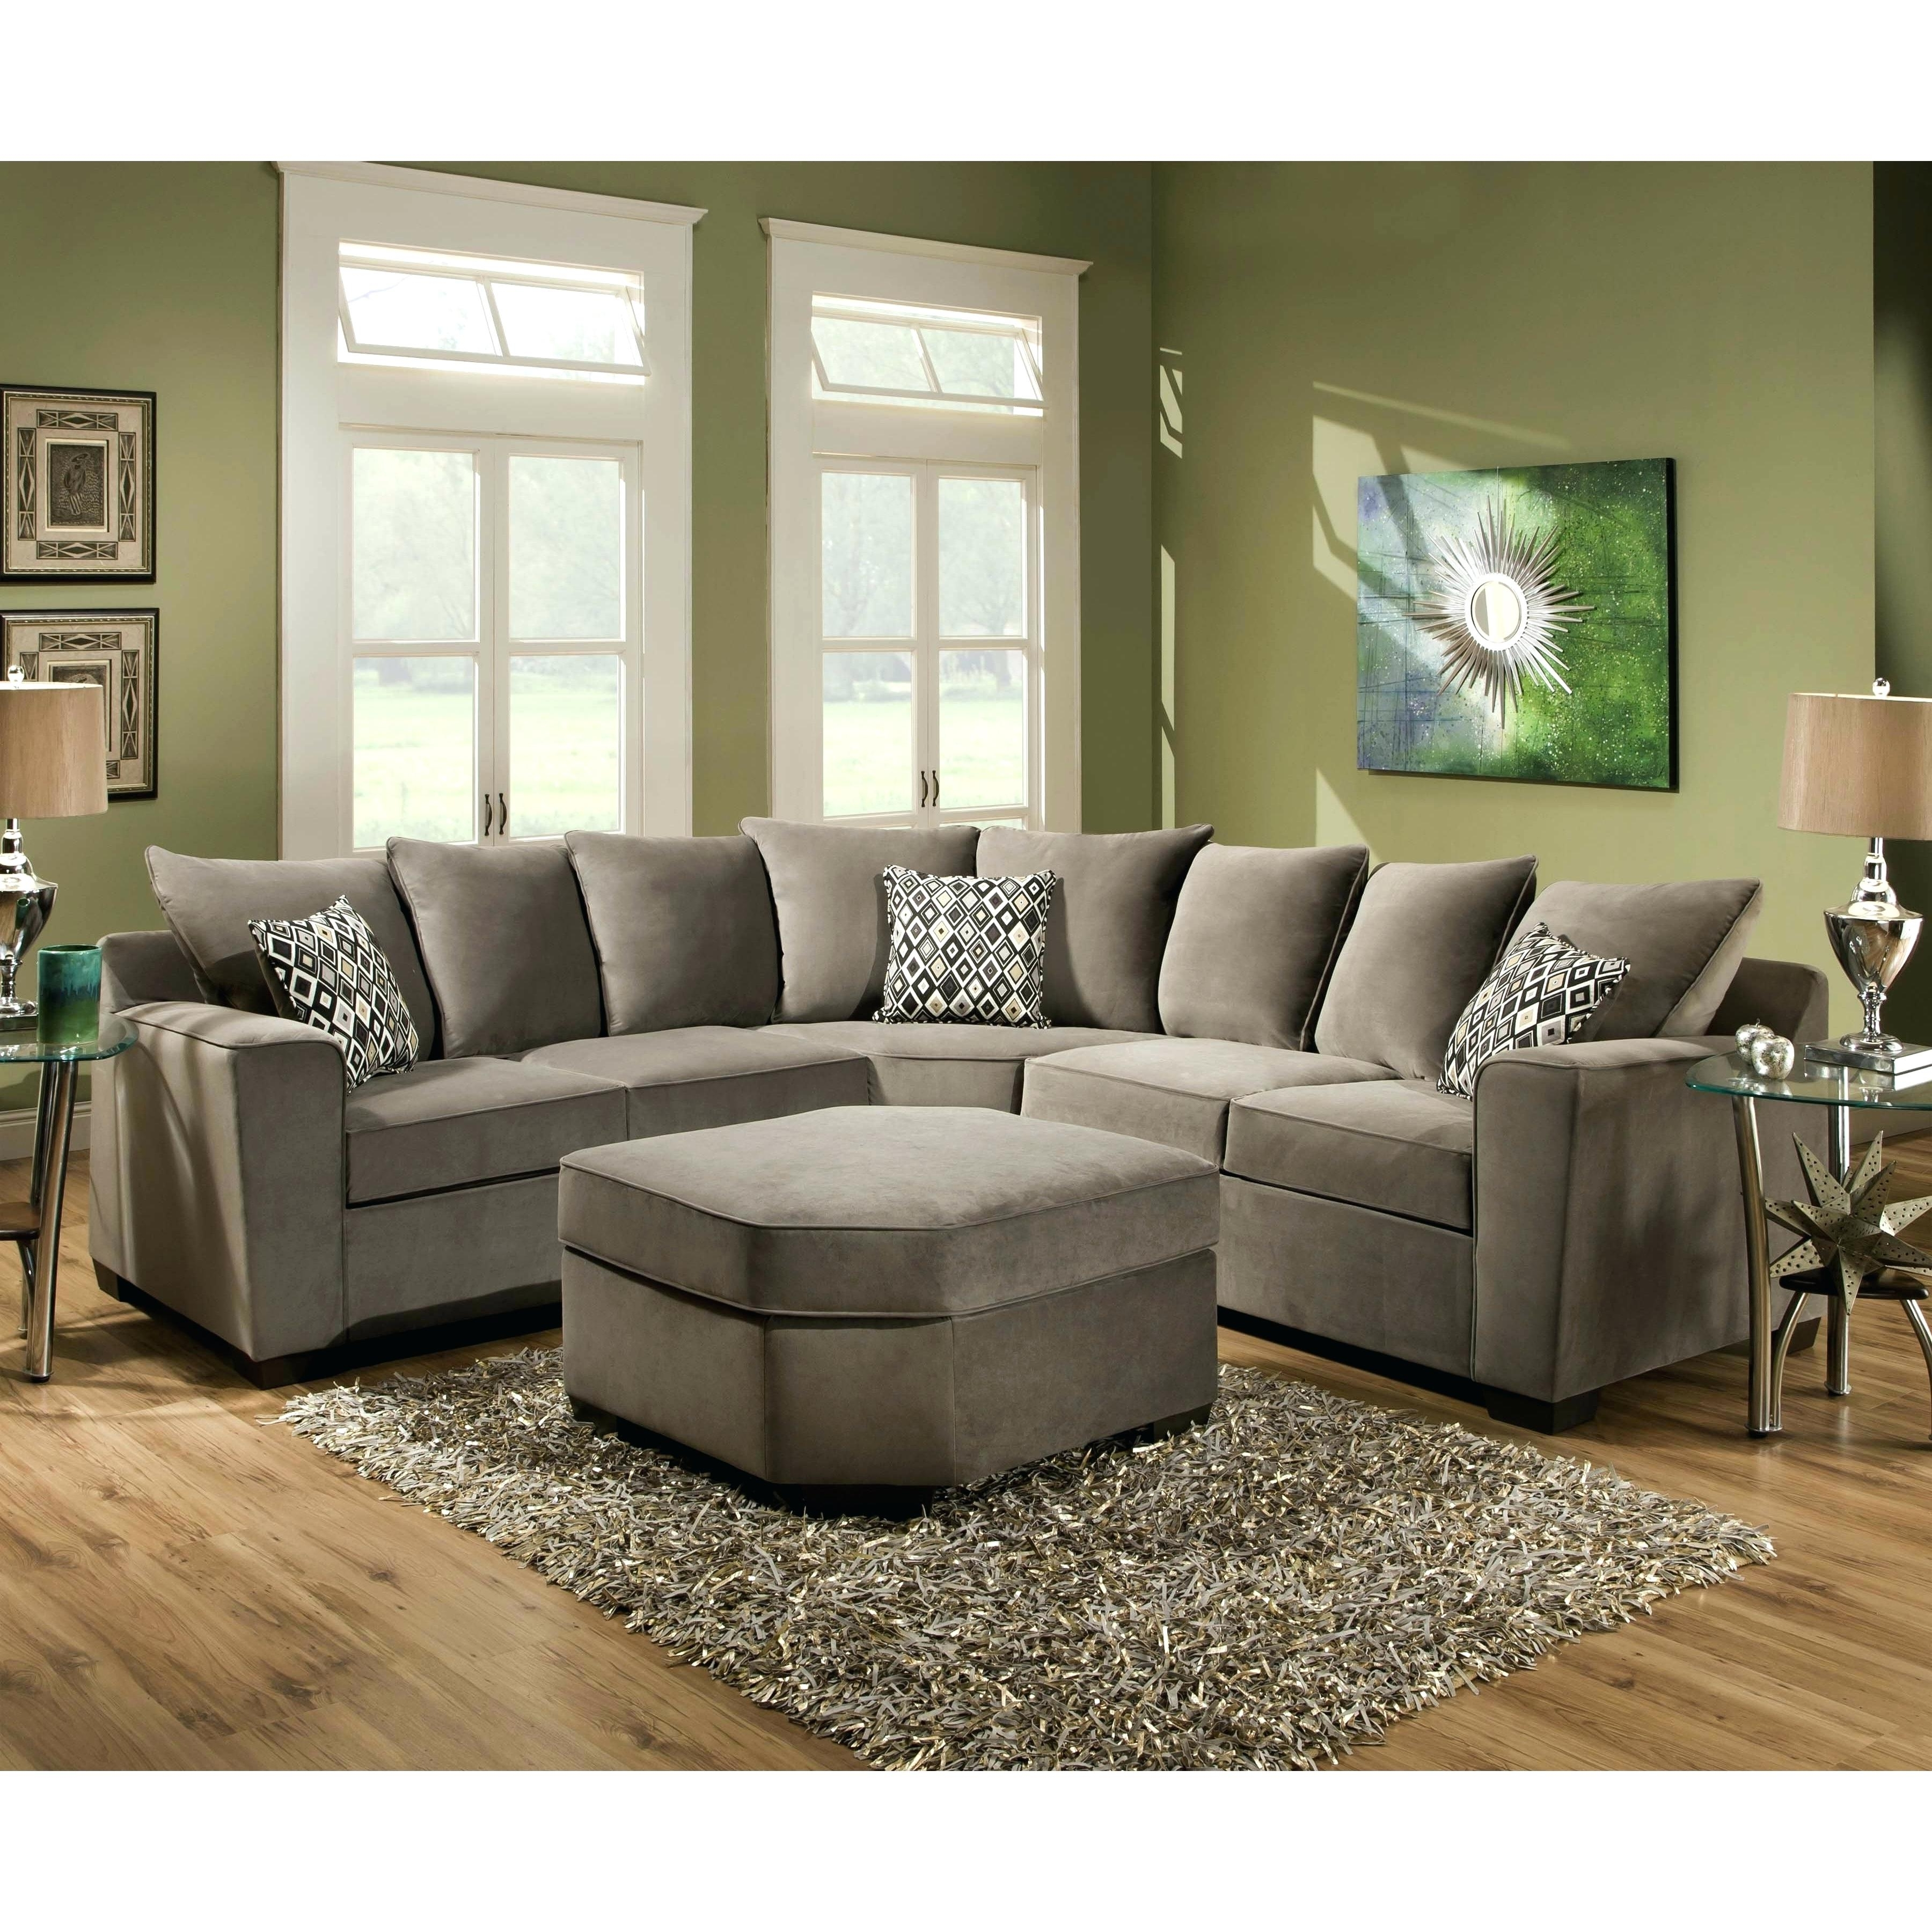 Best And Newest Small Apartment Sectional Sofa Therapy Sofas Nyc – Emsg Pertaining To Nyc Sectional Sofas (View 1 of 15)